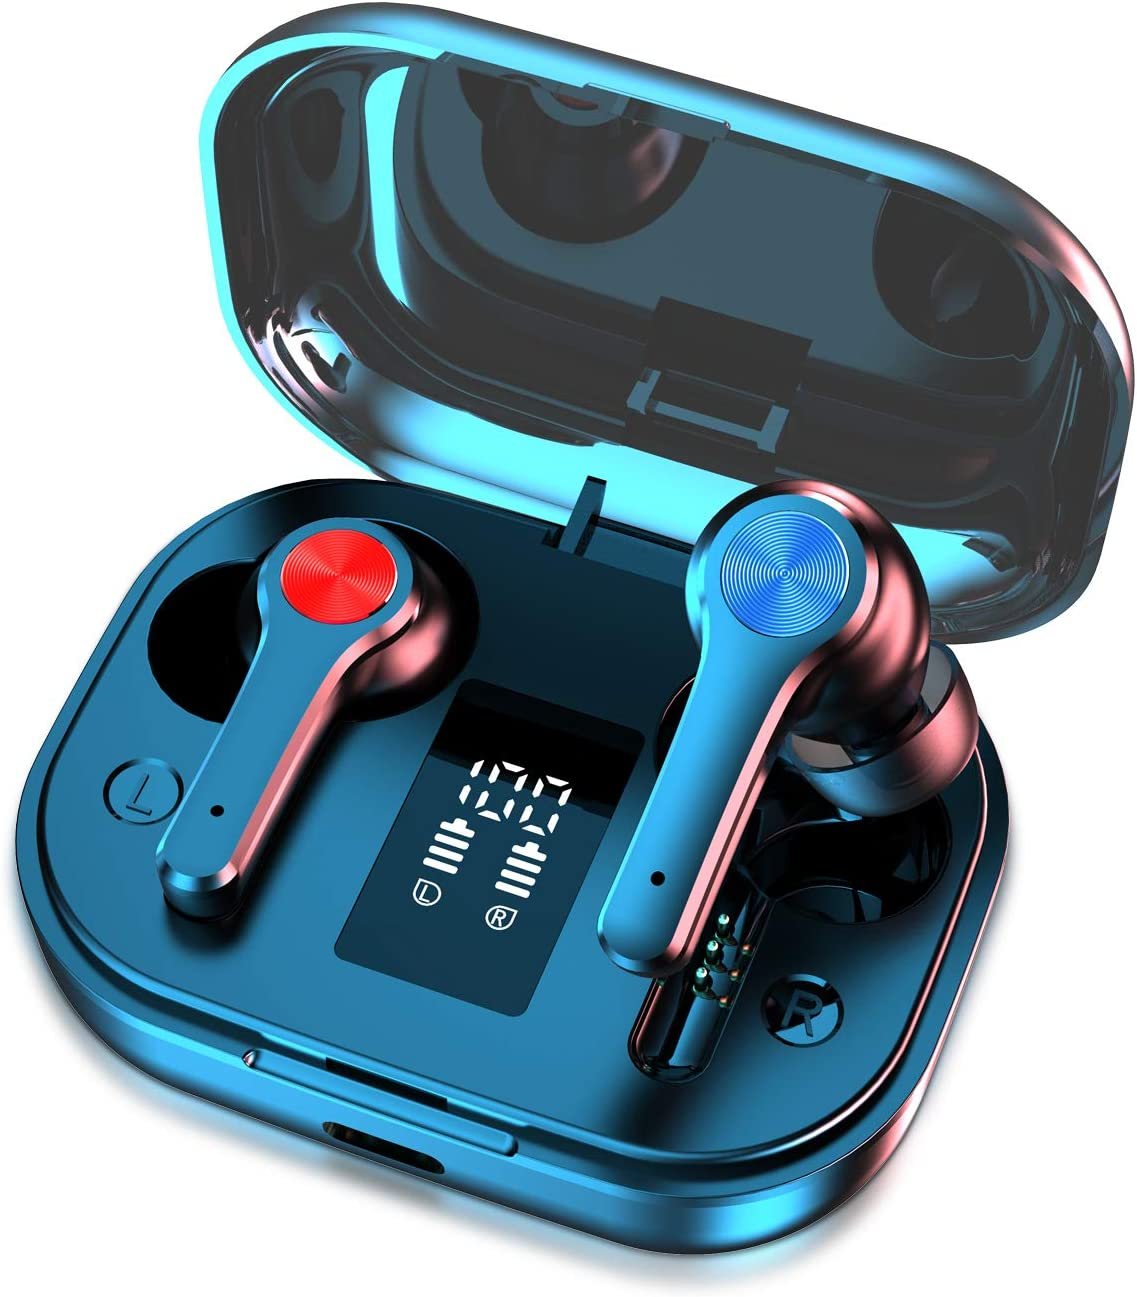 Wireless Earbuds, Bluetooth 5.0 Headphones in-Ear with Charging Case, Waterproof Deep Bass TWS Stereo Earphones Built-in Mic with LED Display Touch Control Compatible with iPhone and Android